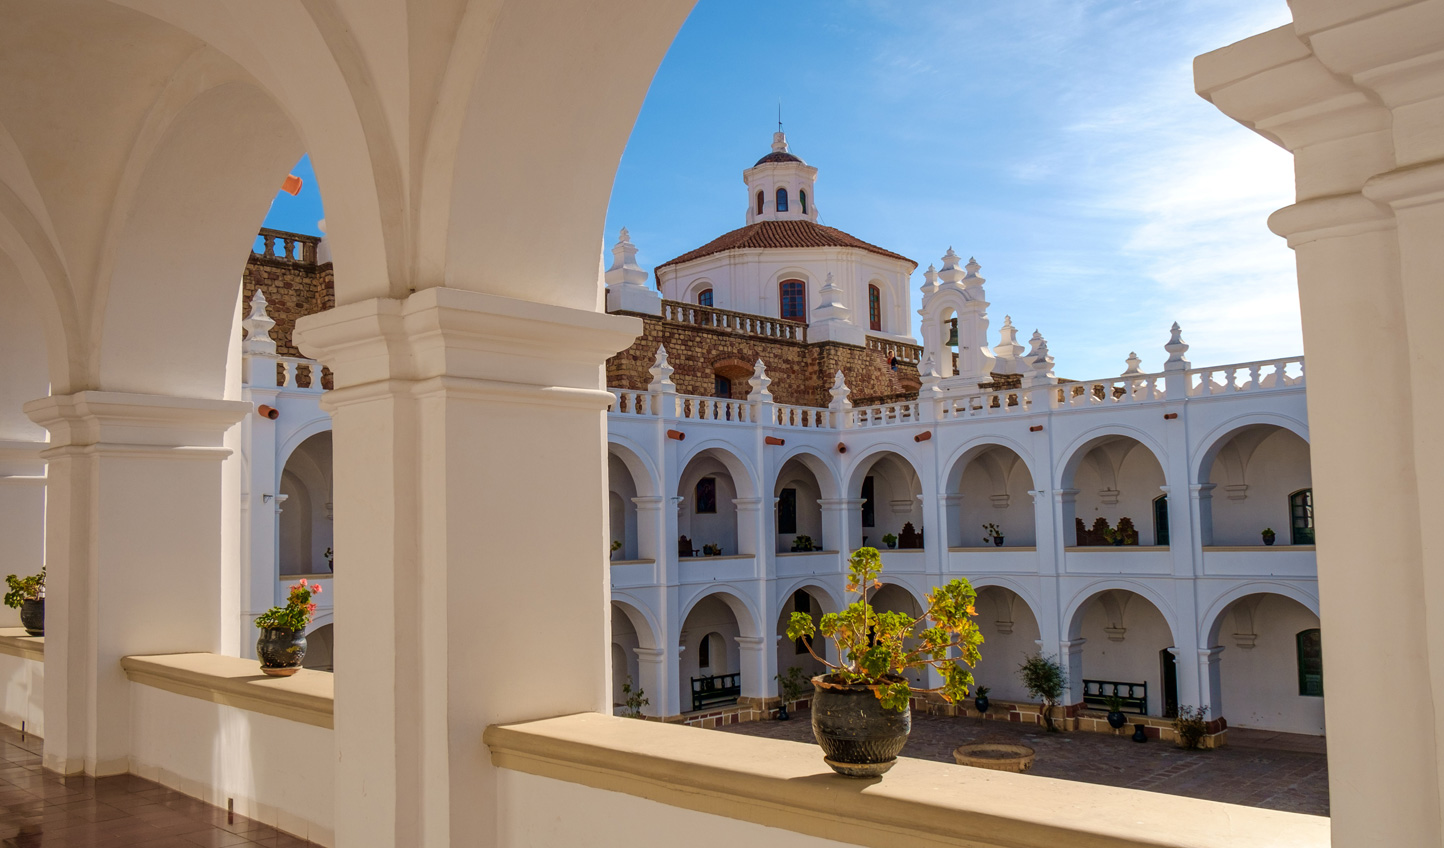 Take in the sights of Sucre on a city tour